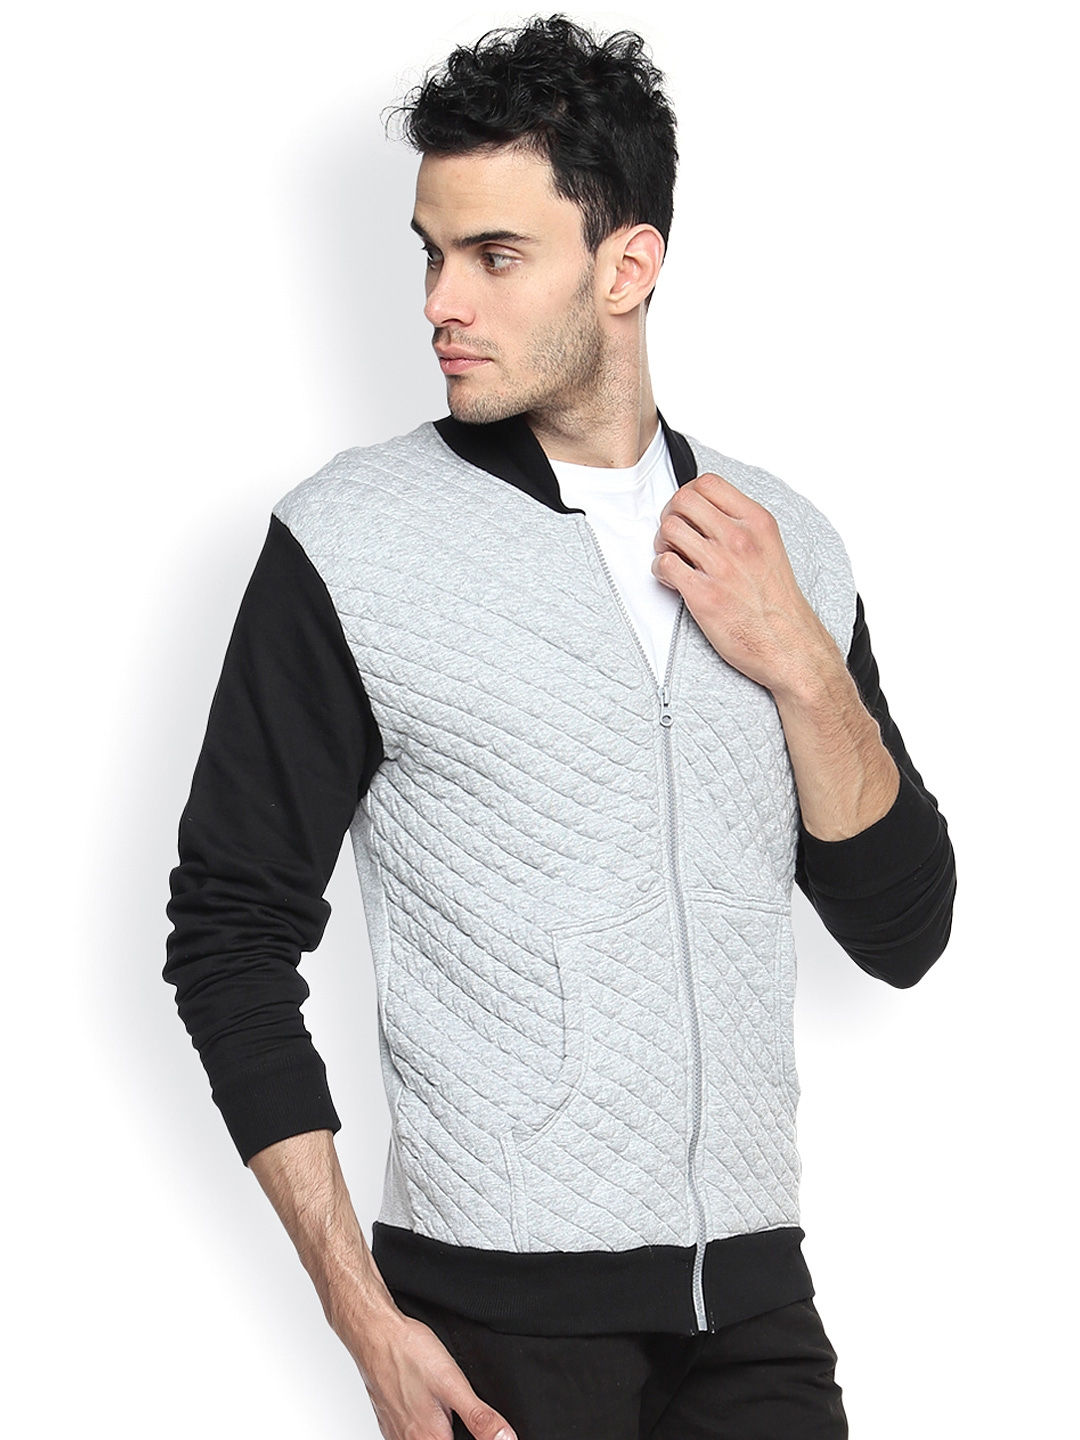 cc5824b0d Buy Campus Sutra Grey Quilted Jacket - Jackets for Men 925033 | Myntra